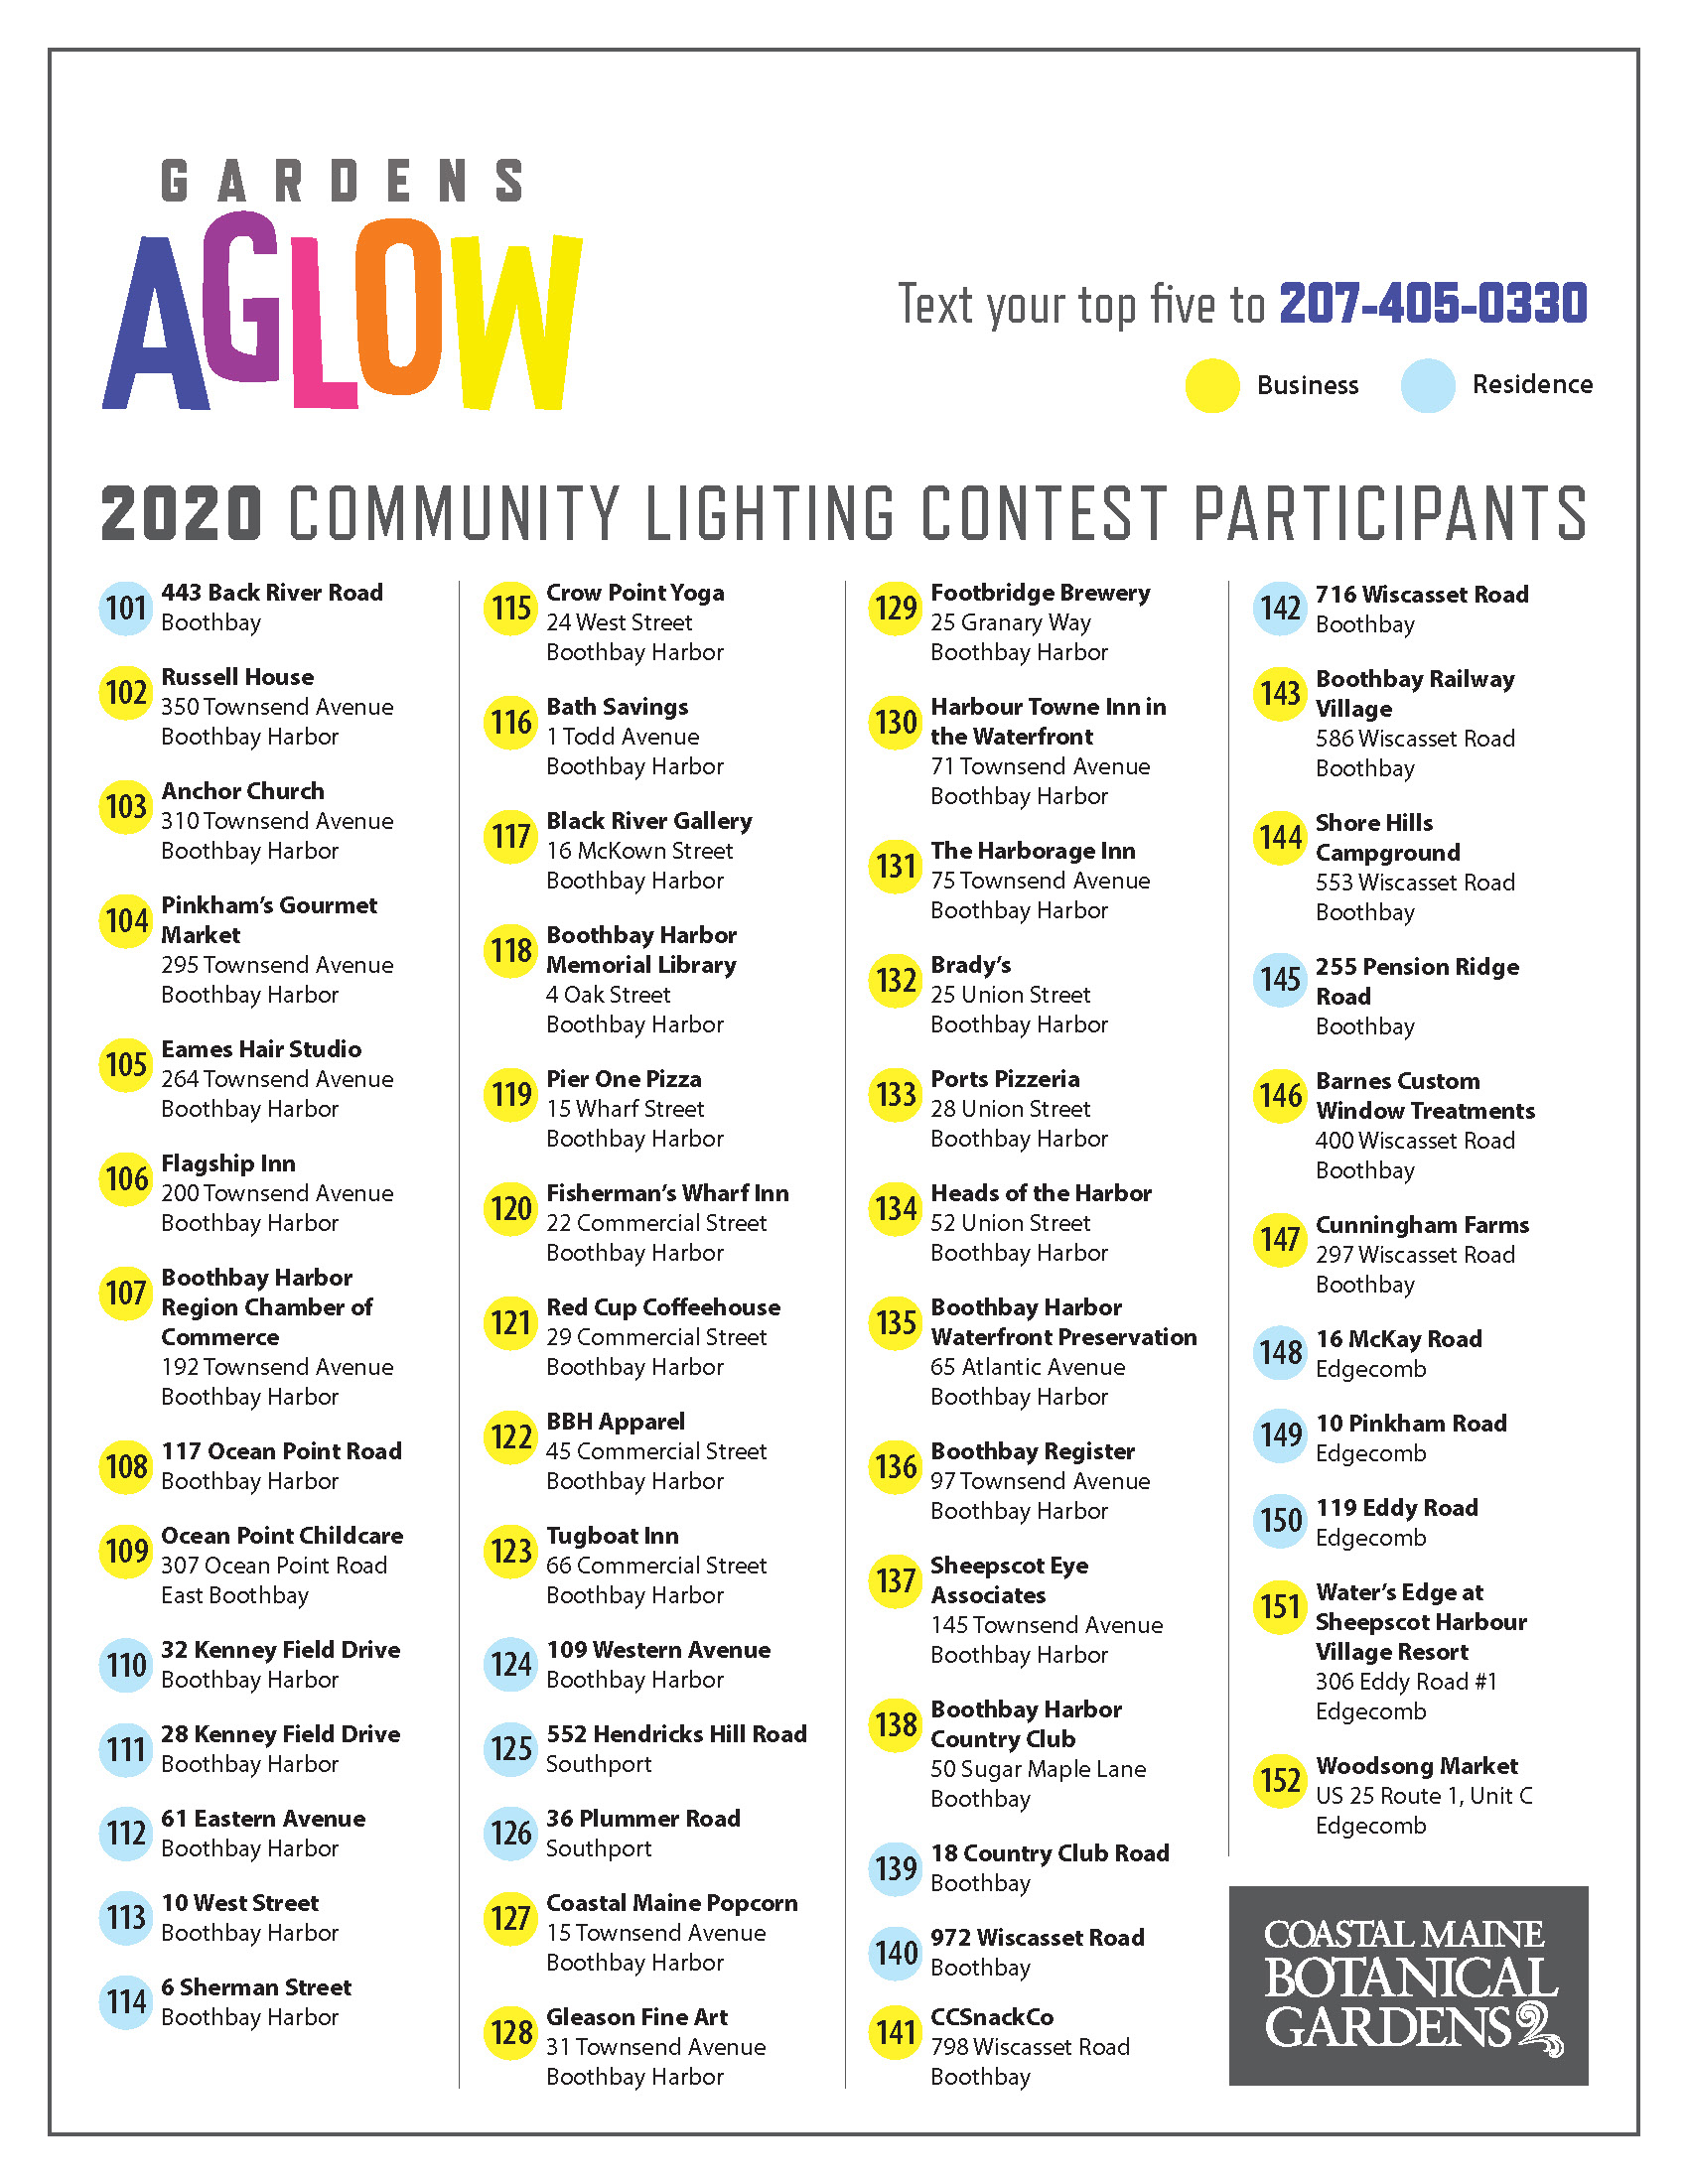 There are more than 50 Community Lighting Contest Participants.